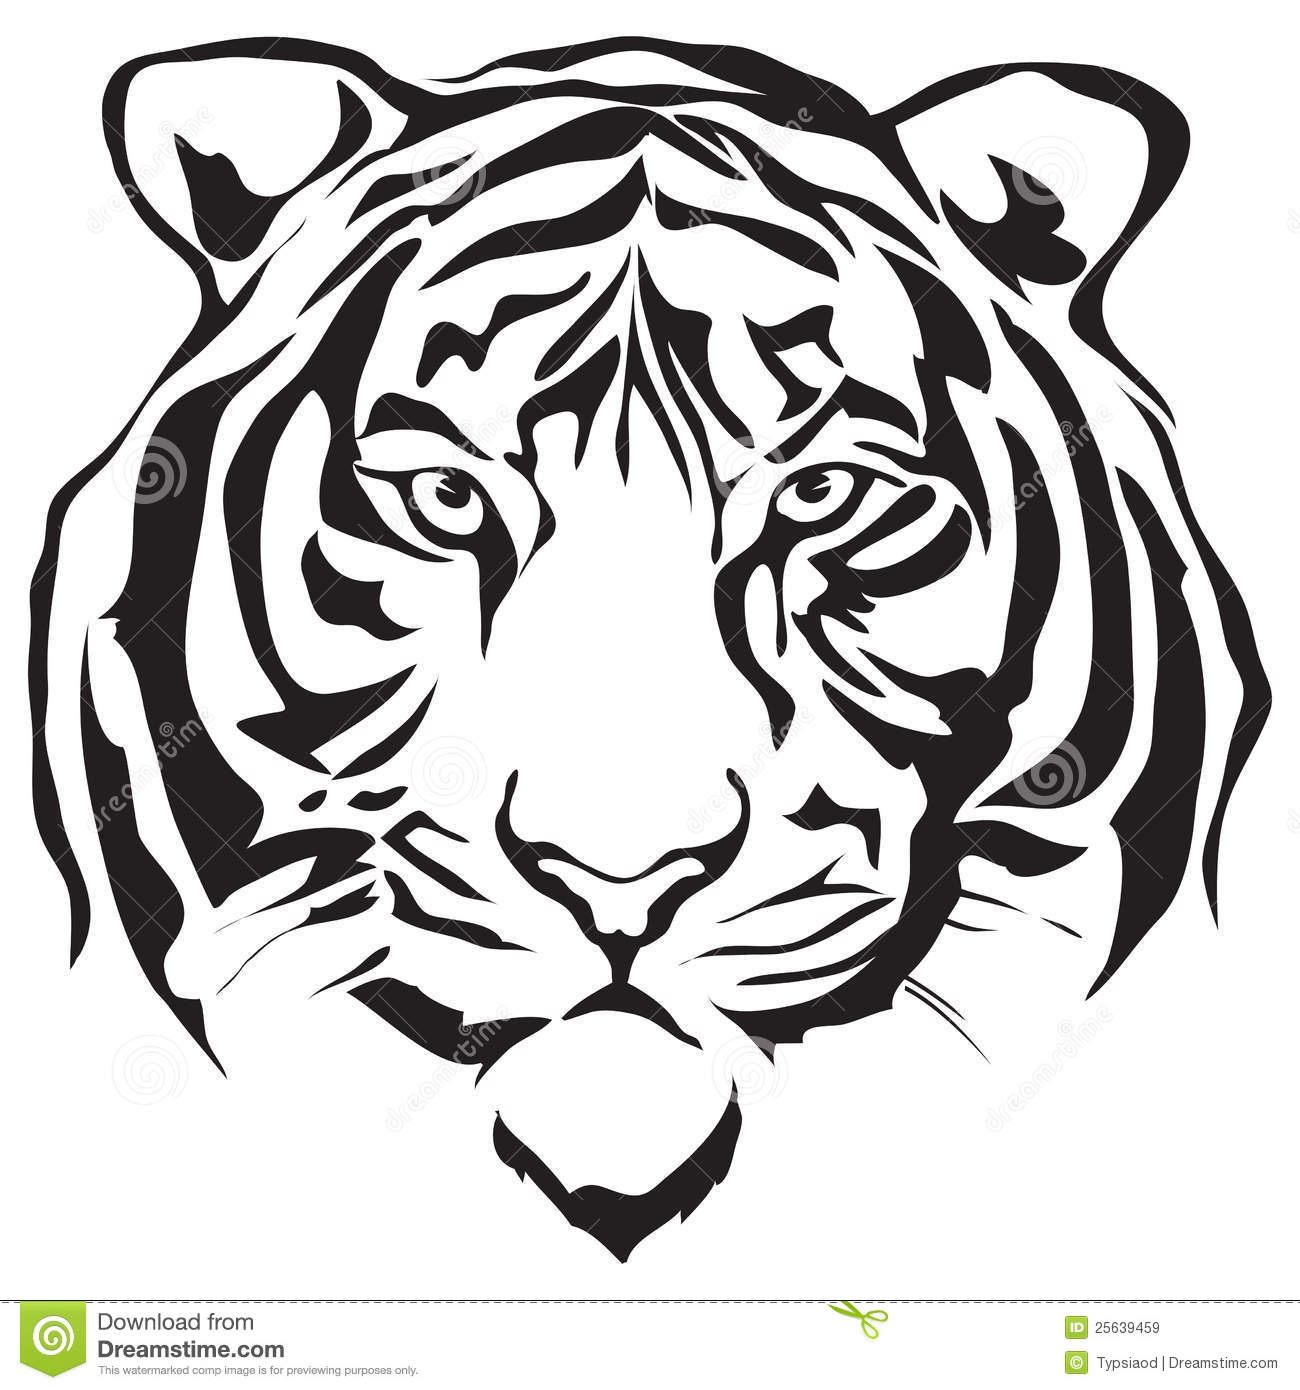 Black tiger clipart banner royalty free stock Black and white tiger clipart 1 » Clipart Station banner royalty free stock